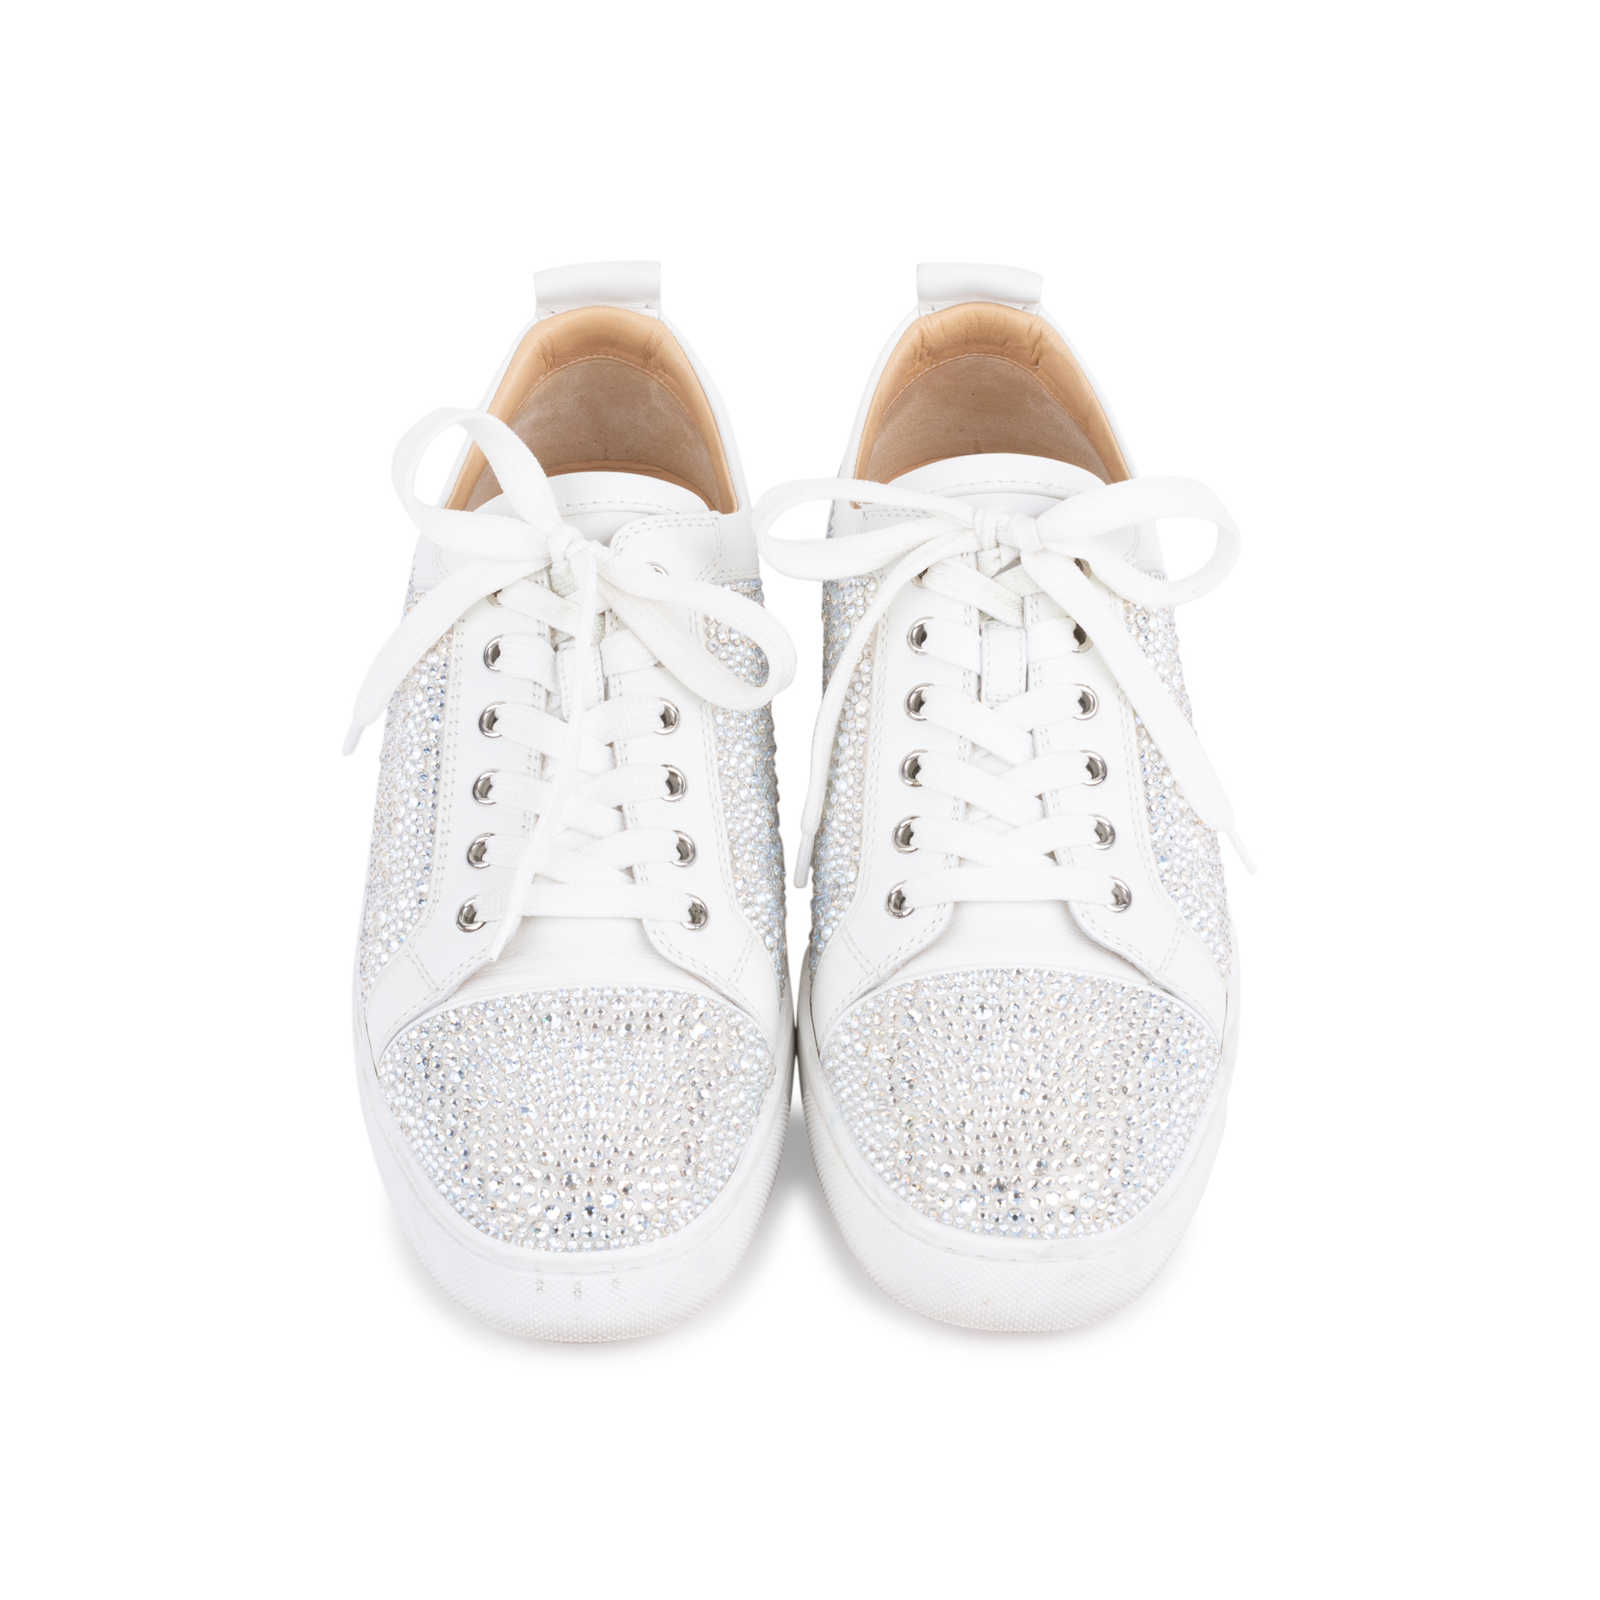 2c59624ae33f Authentic Second Hand Christian Louboutin Louis Junior Strass Leather  Sneakers (PSS-601-00003 ...